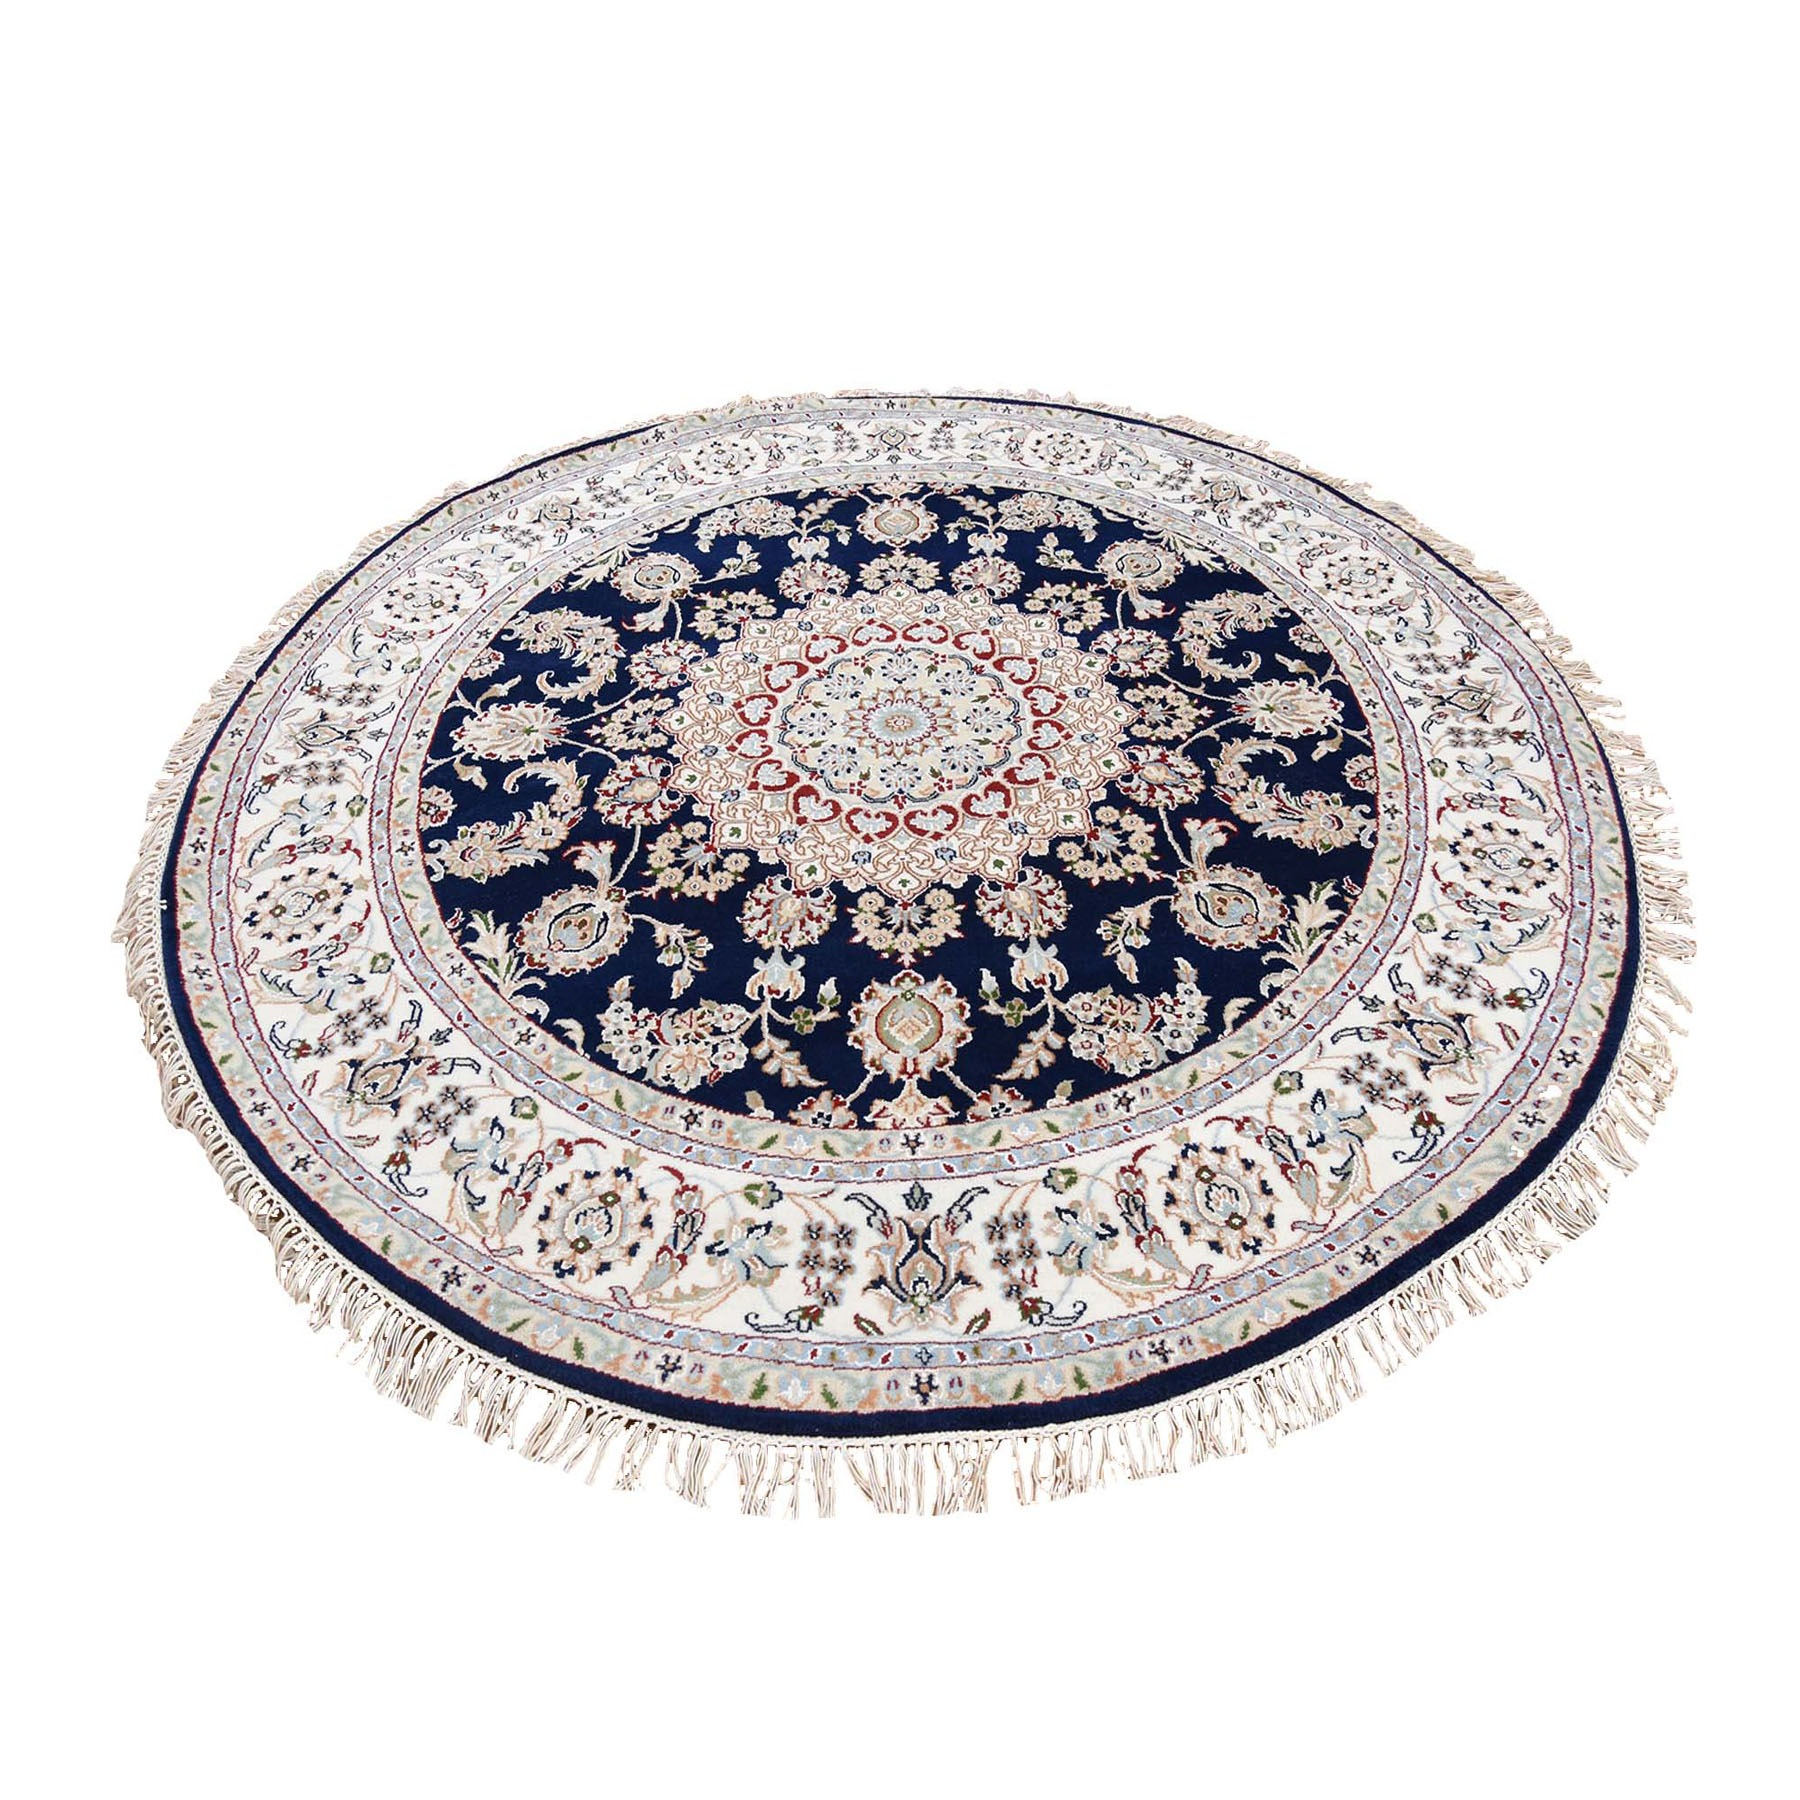 Pirniakan Collection Hand Knotted Blue Rug No: 195326